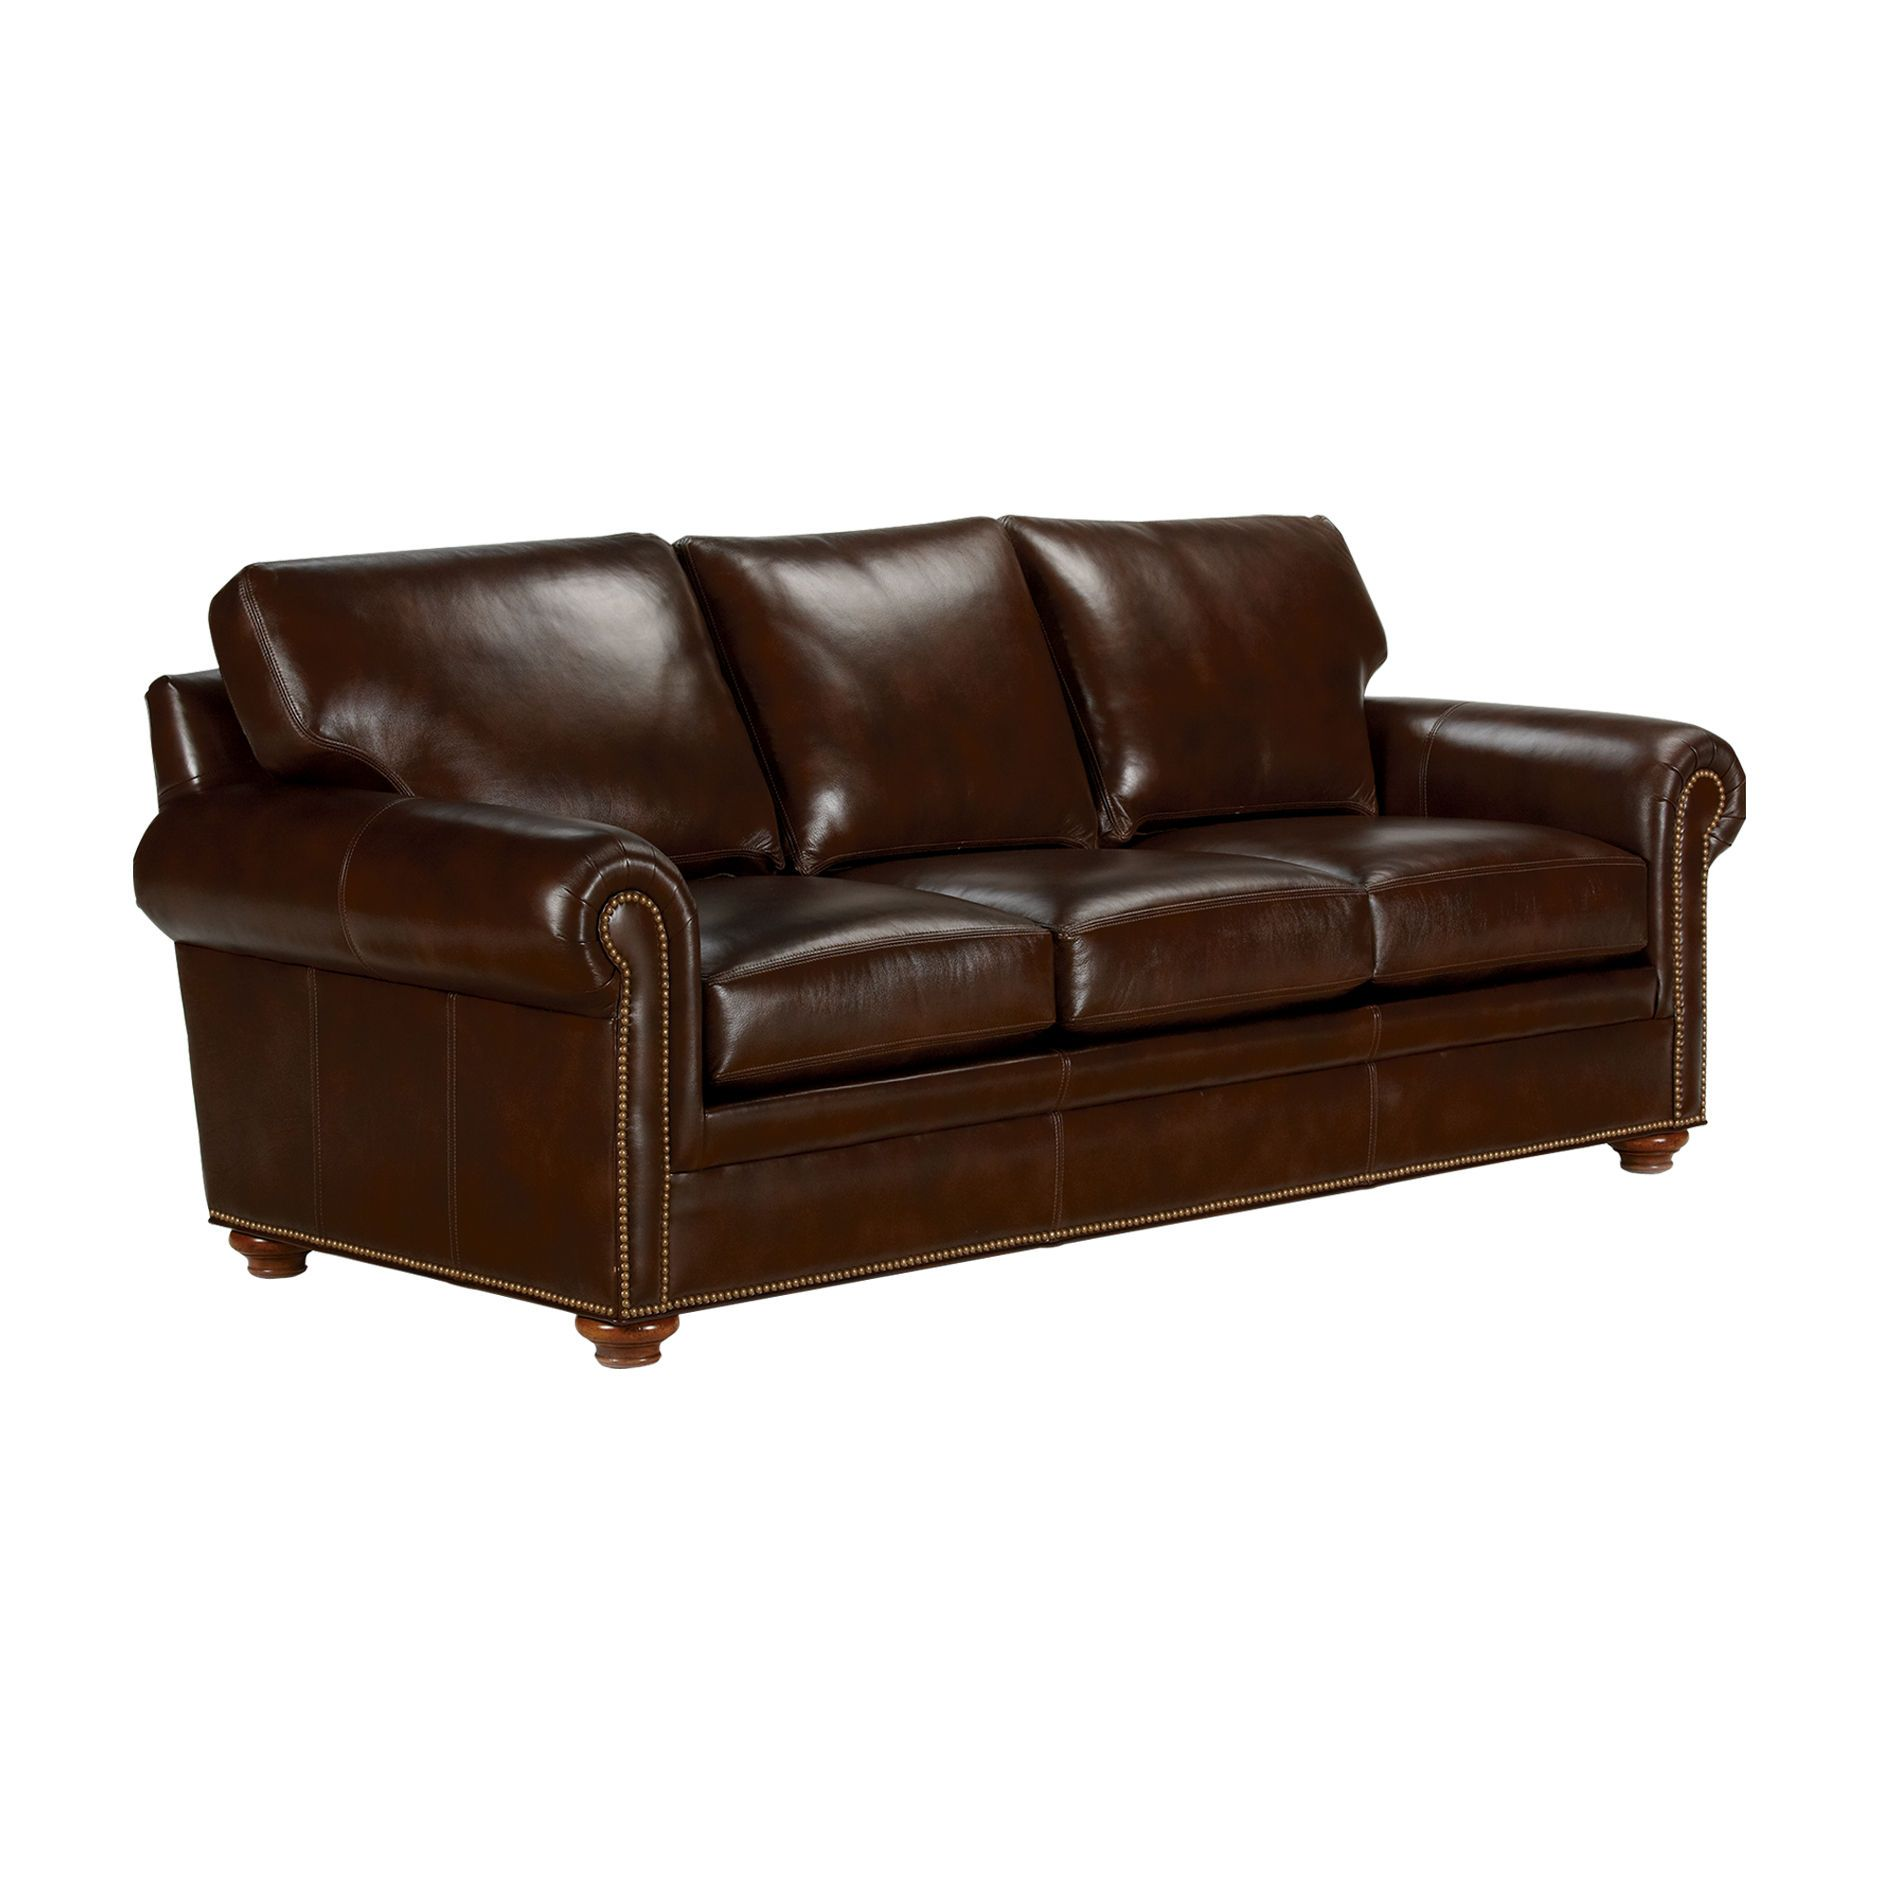 Conor Express Leather Sofa - Ethan Allen US | Equestrian | Leather ...